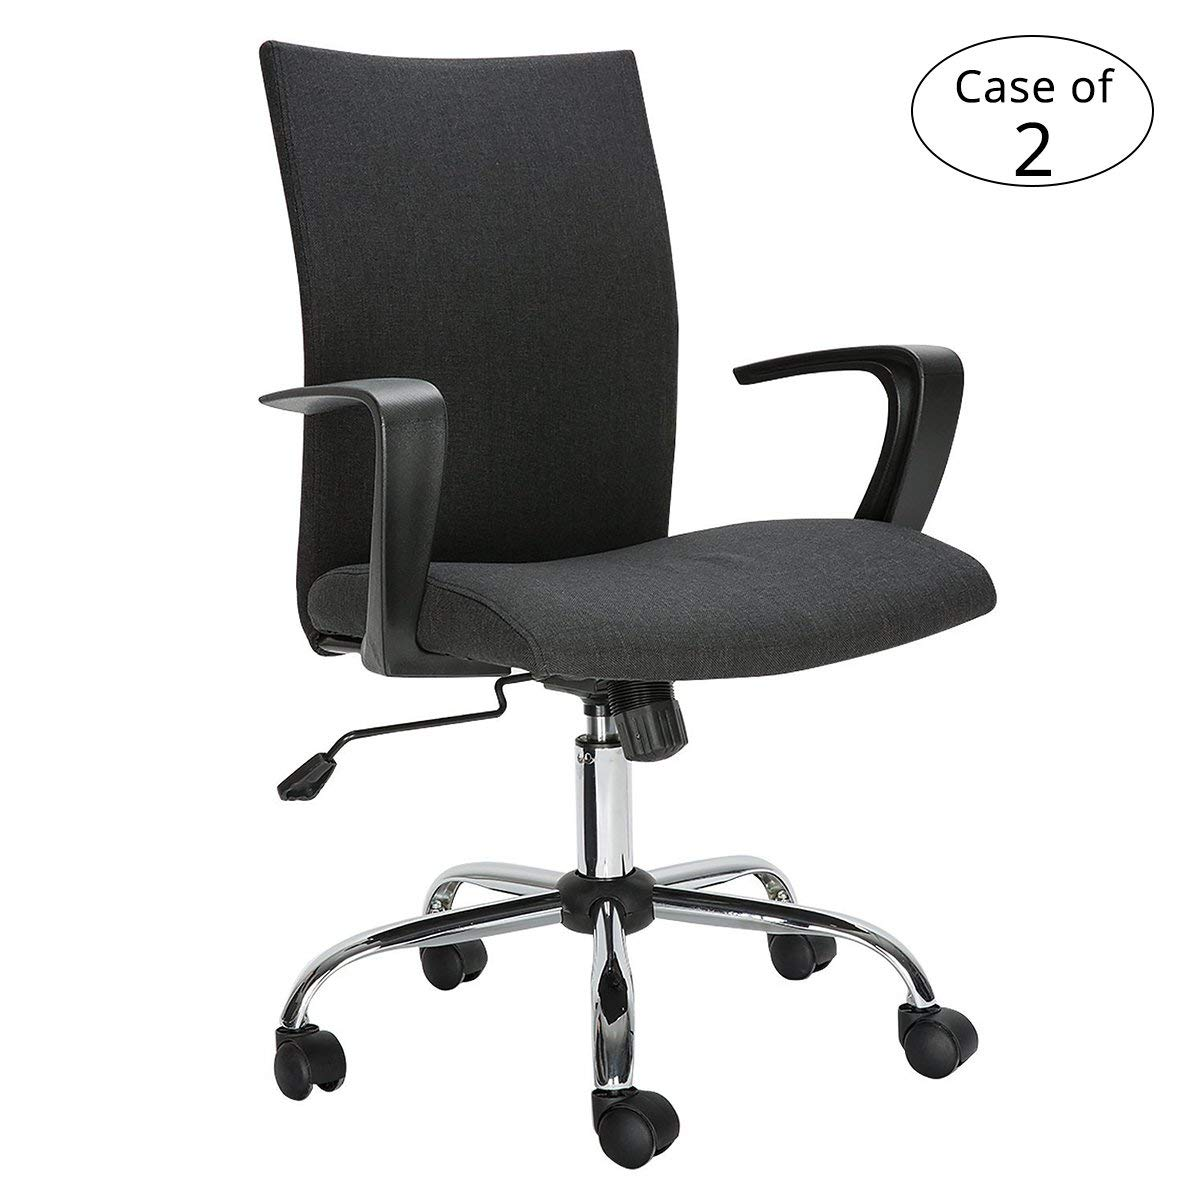 Case of 2, HollyHOME Computer Desk Chair, Comfort Fabric Swivel Home Office Task Chair with Arms and Adjustable Height, Suitable for Computer Working and Meeting